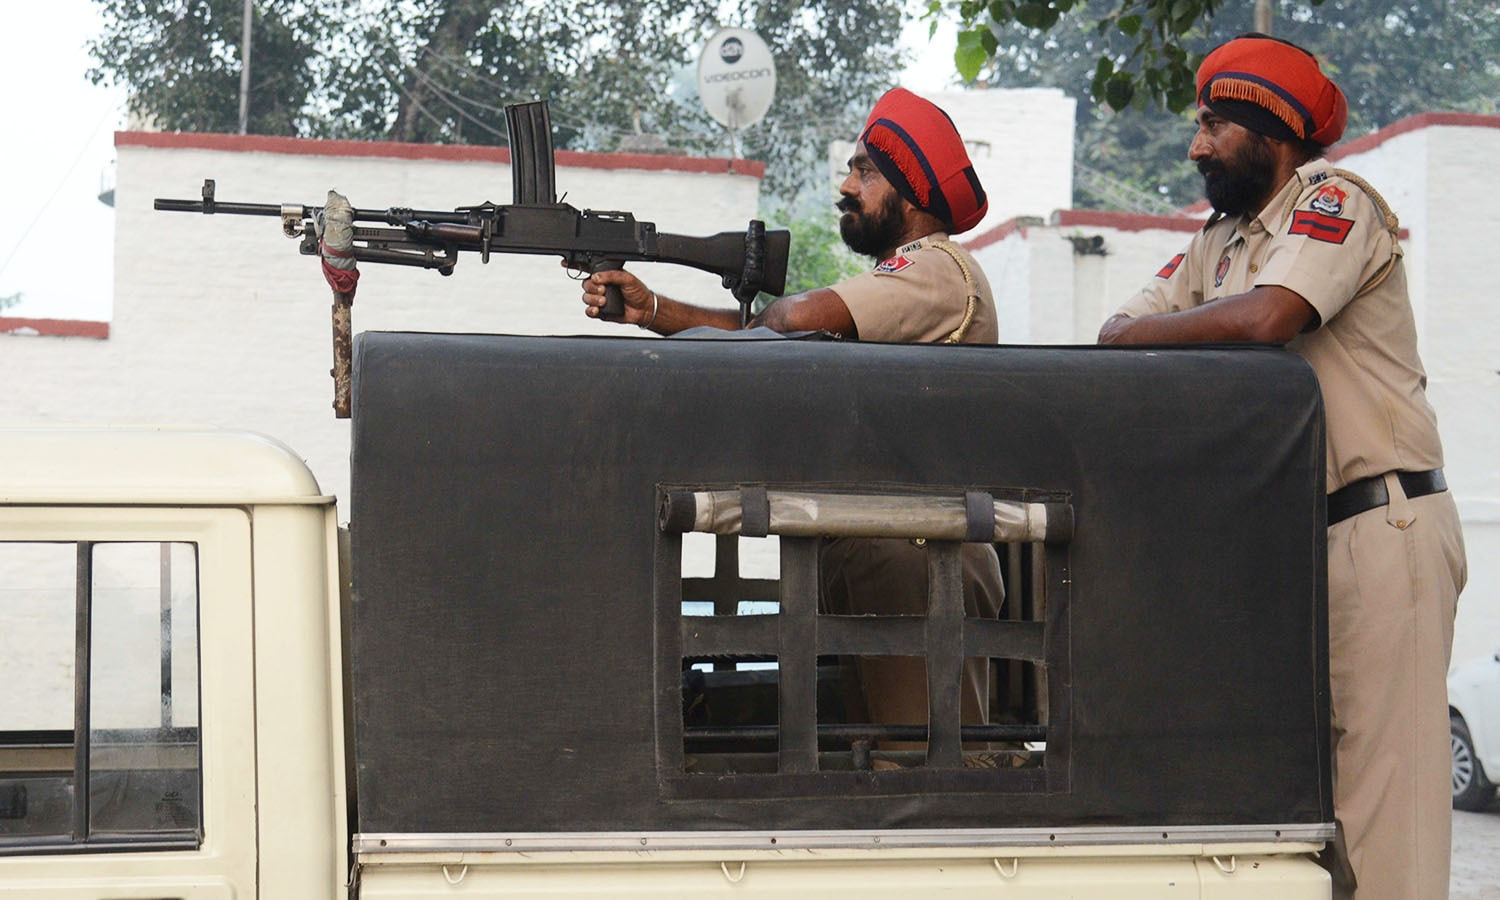 Indian Punjab police personnel stand guard at Attari Railway Station, about 35 kms from Amritsar. — AFP